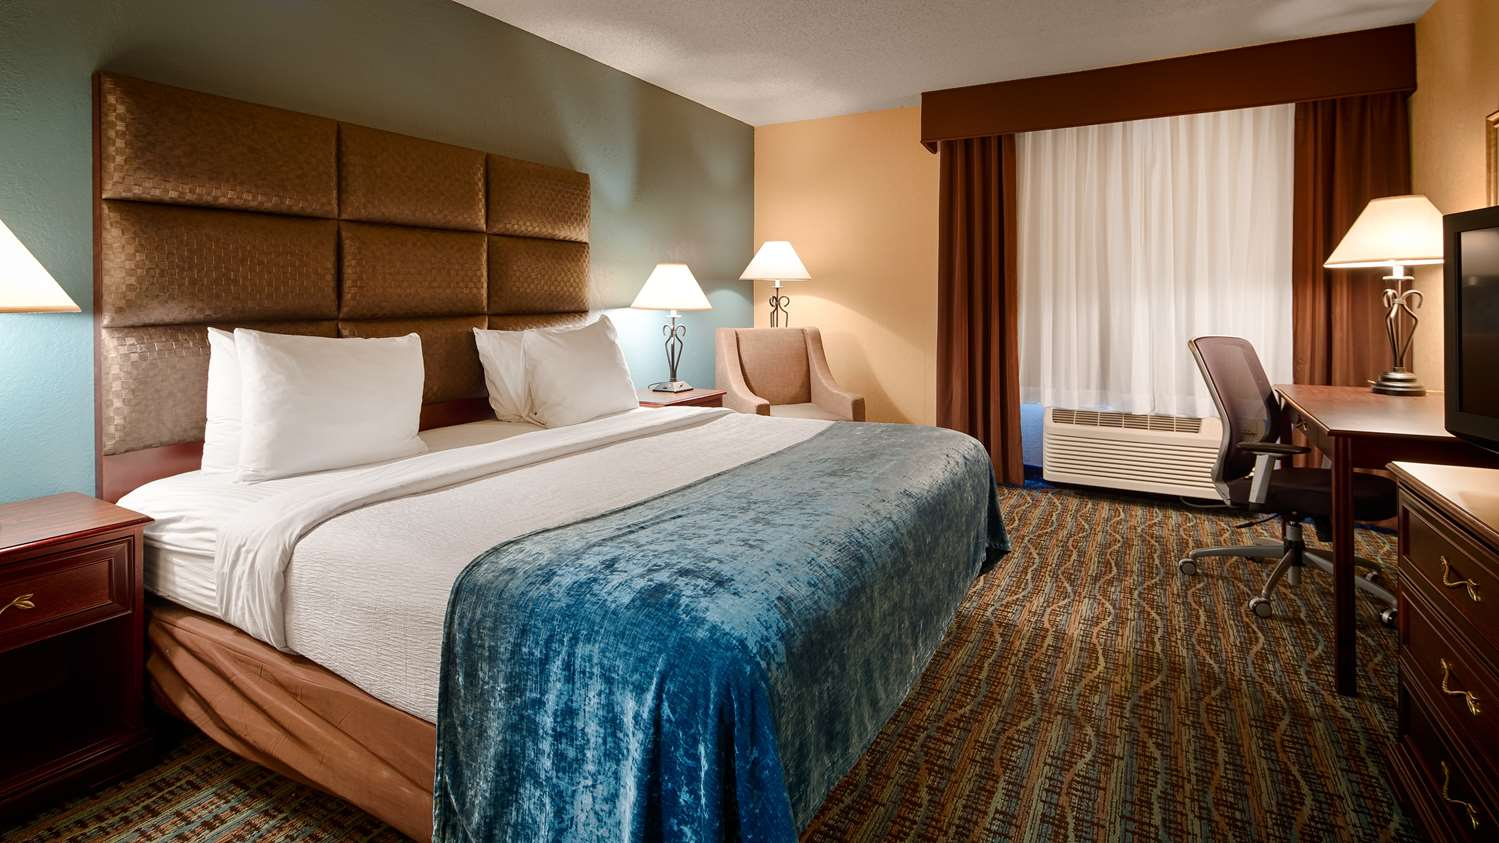 Upgrade Yourself To Our King Room For Added Comfort During You Stay